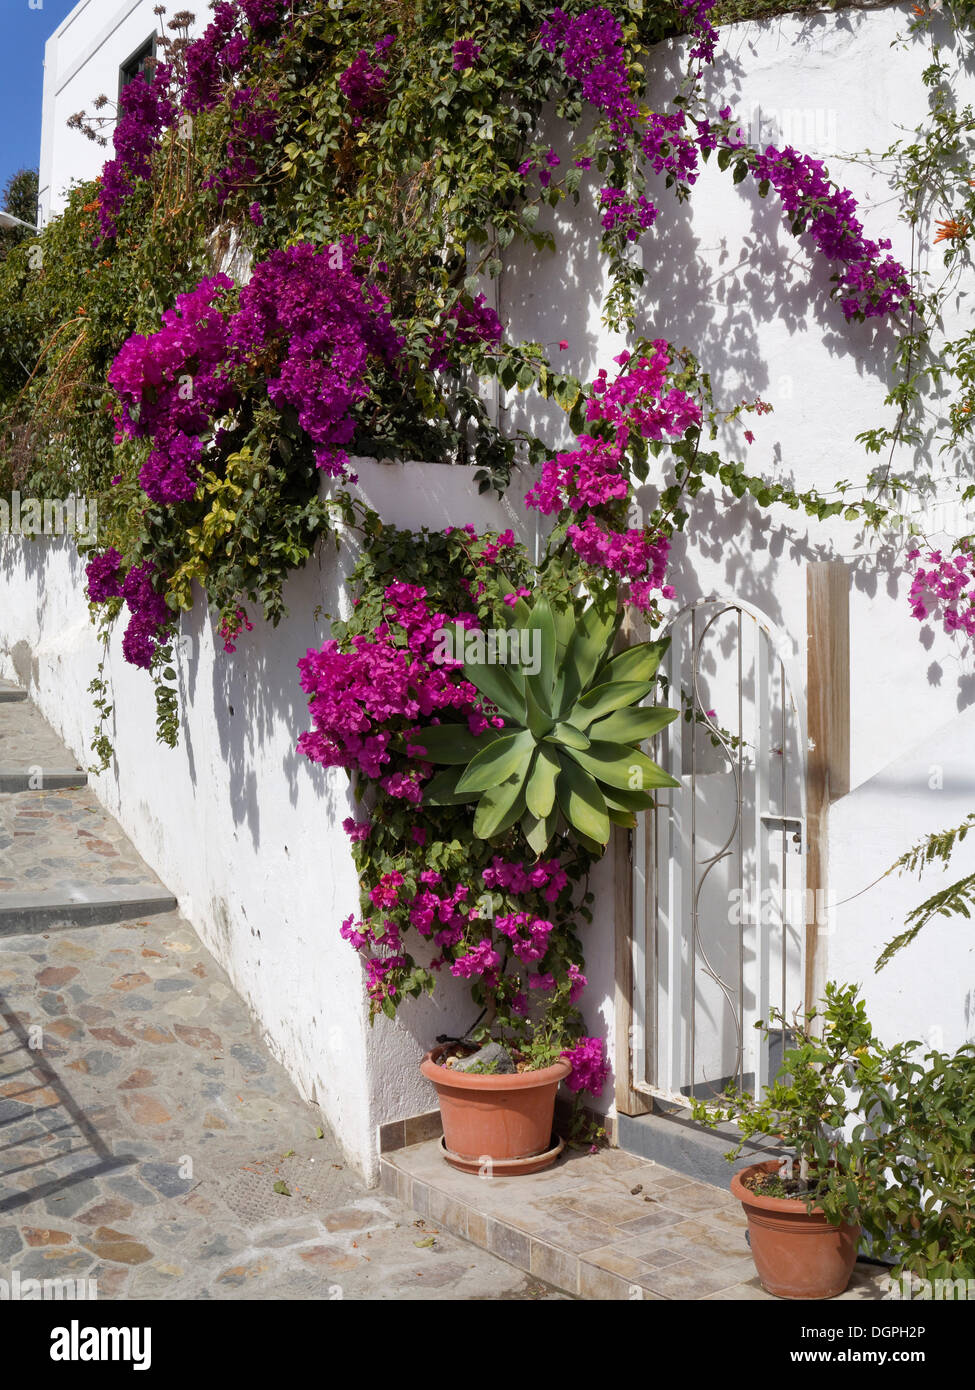 House wall with bougainvillea in La Calera, Valle Gran Rey valley, La Gomera, Valle Gran Rey, Canary Islands, Spain - Stock Image